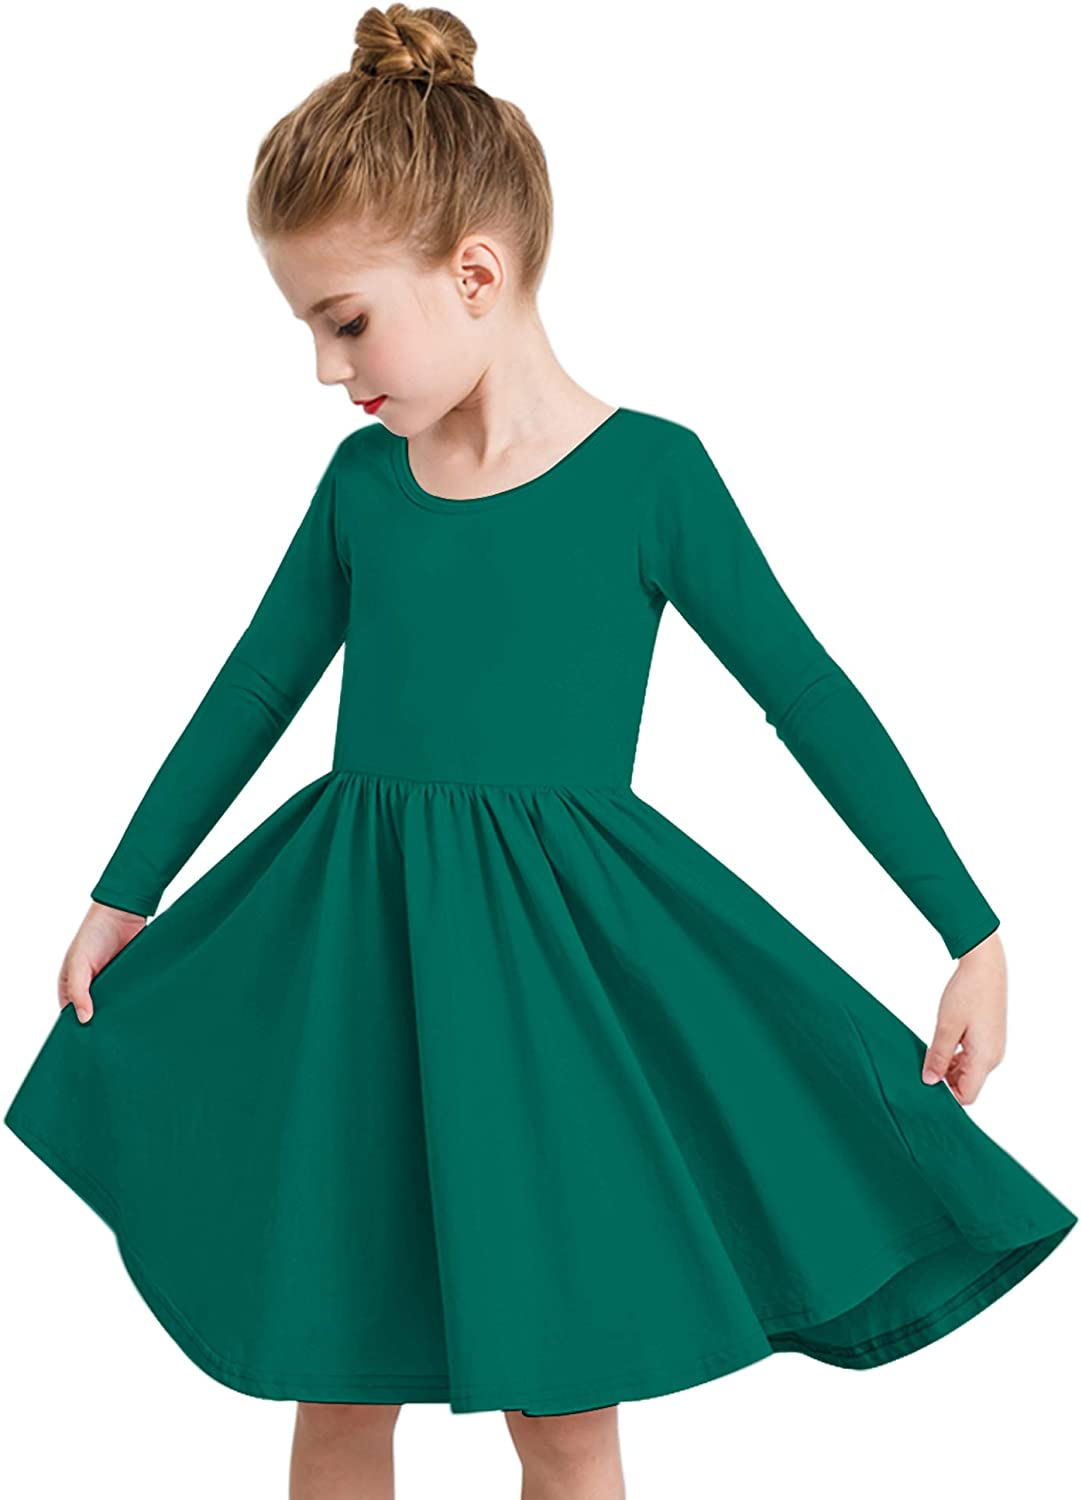 STELLE Toddler//Girls Long Sleeve Casual A-Line Twirly Skater Dress for School Party